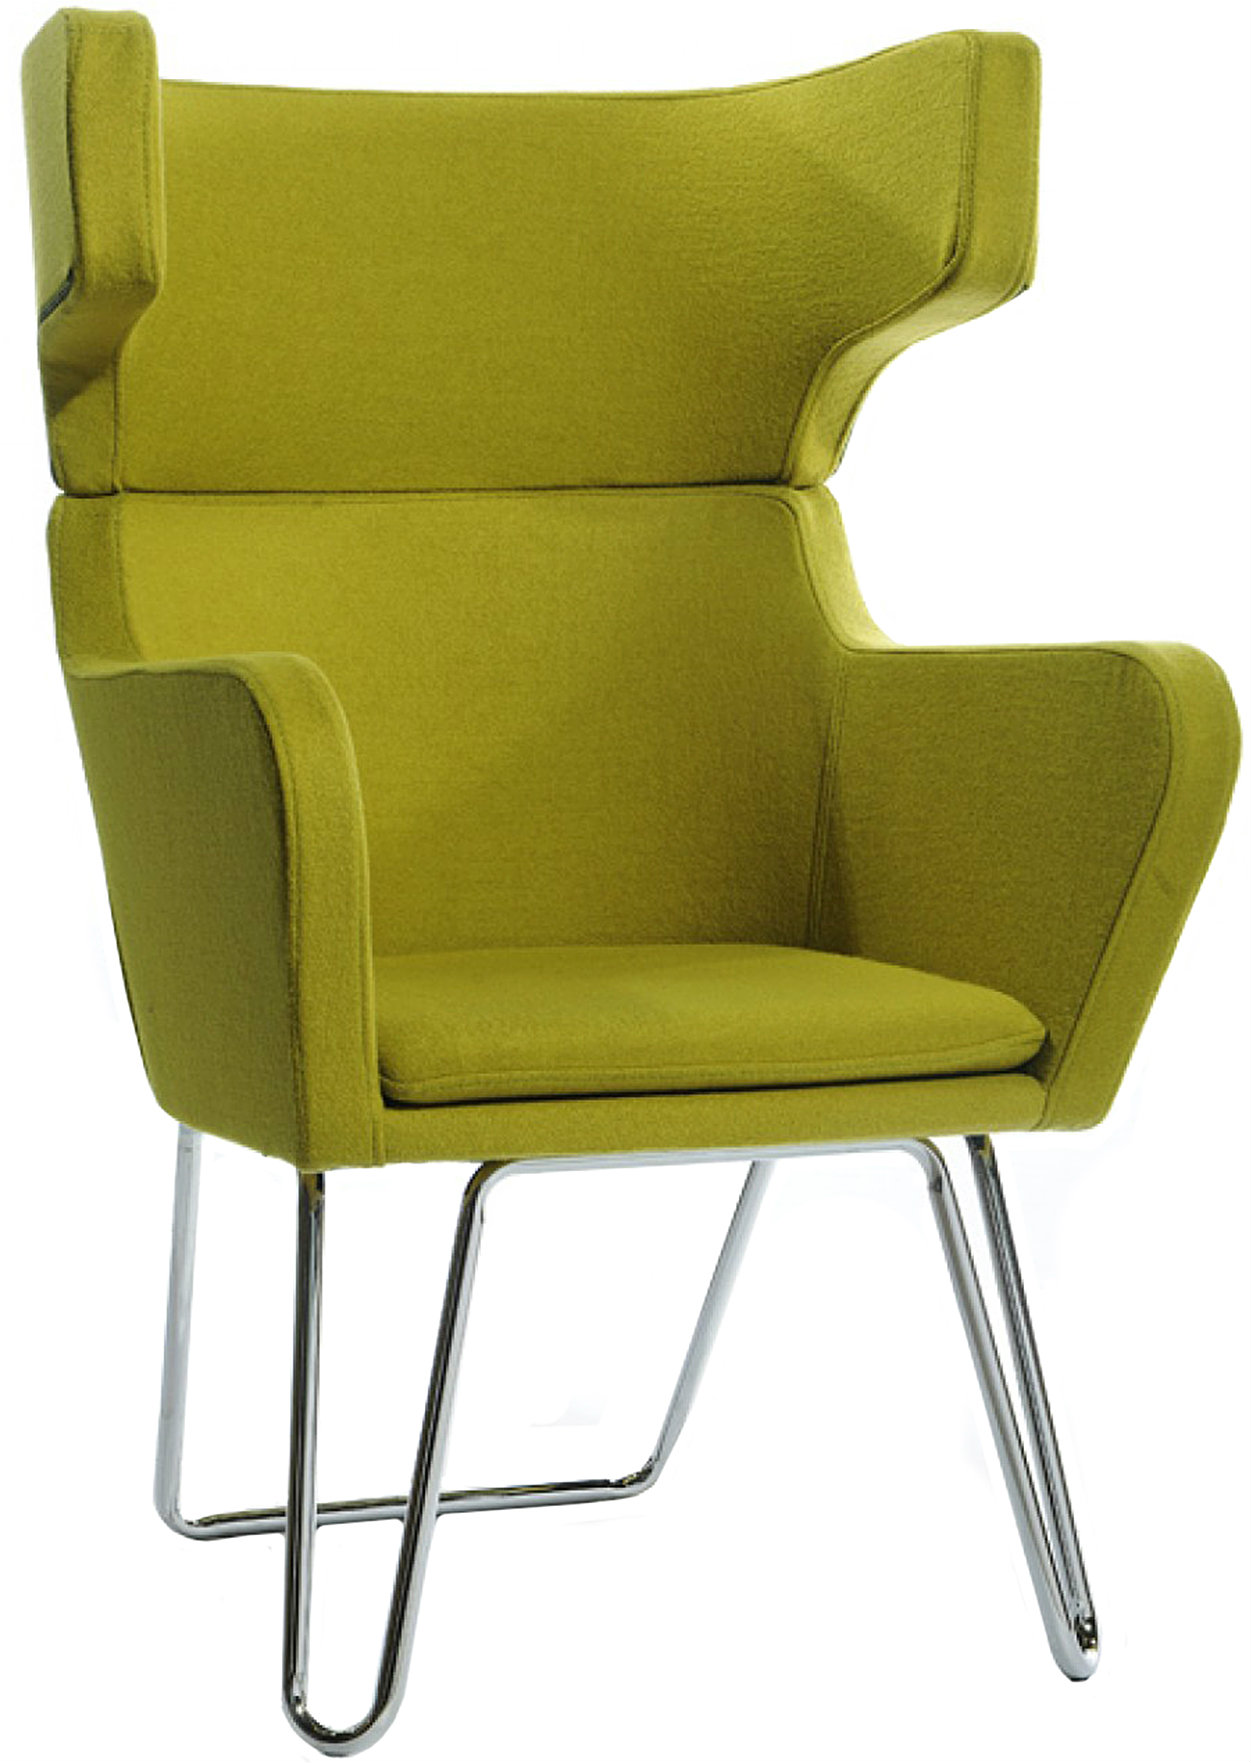 Alan Green Living Room Chair Green Lounge Chair Advanced Interior Designs